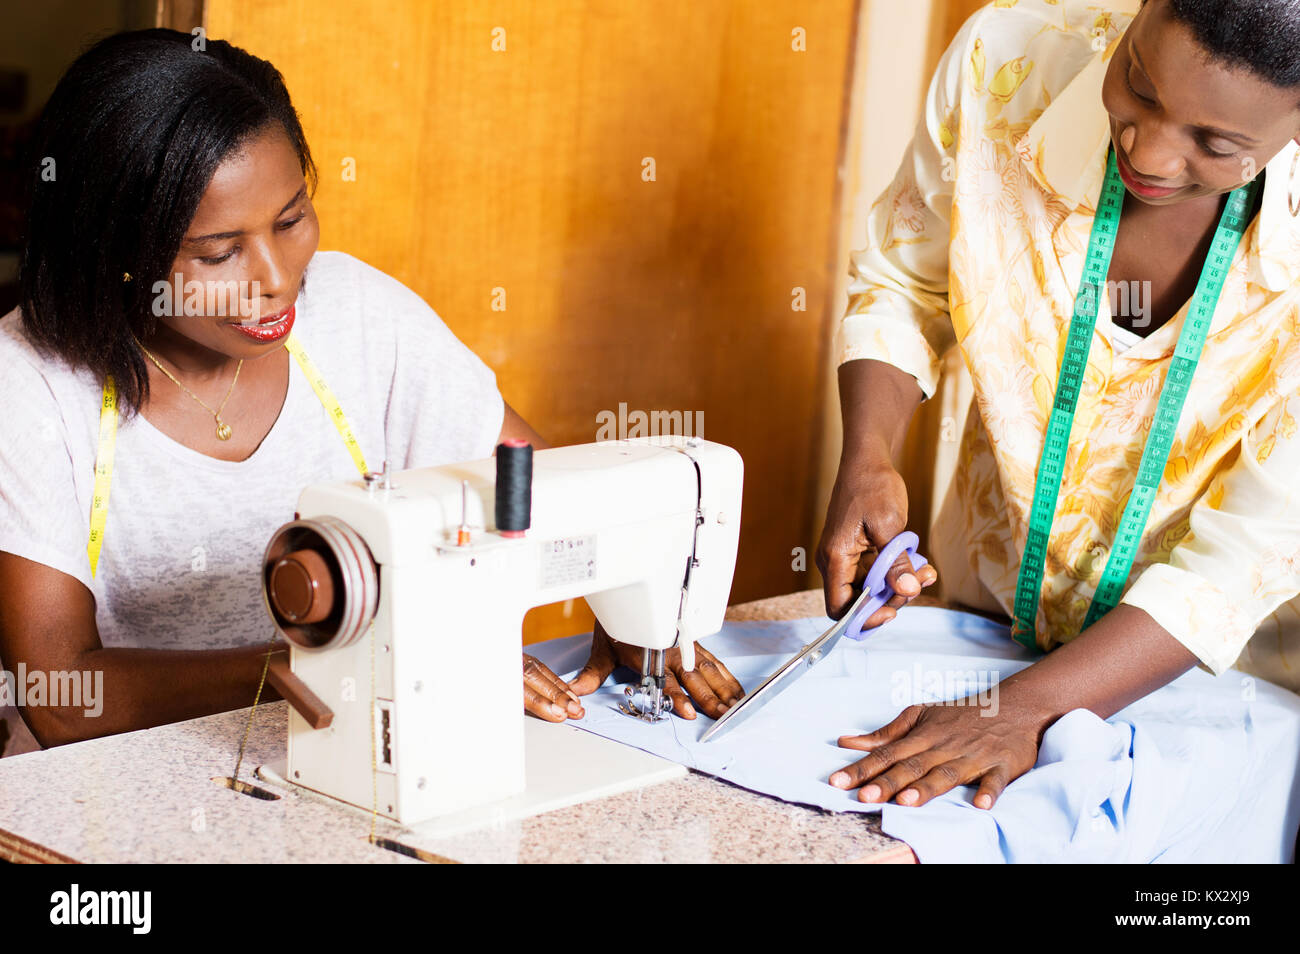 the seamstress cut the cloth to her  intern. - Stock Image